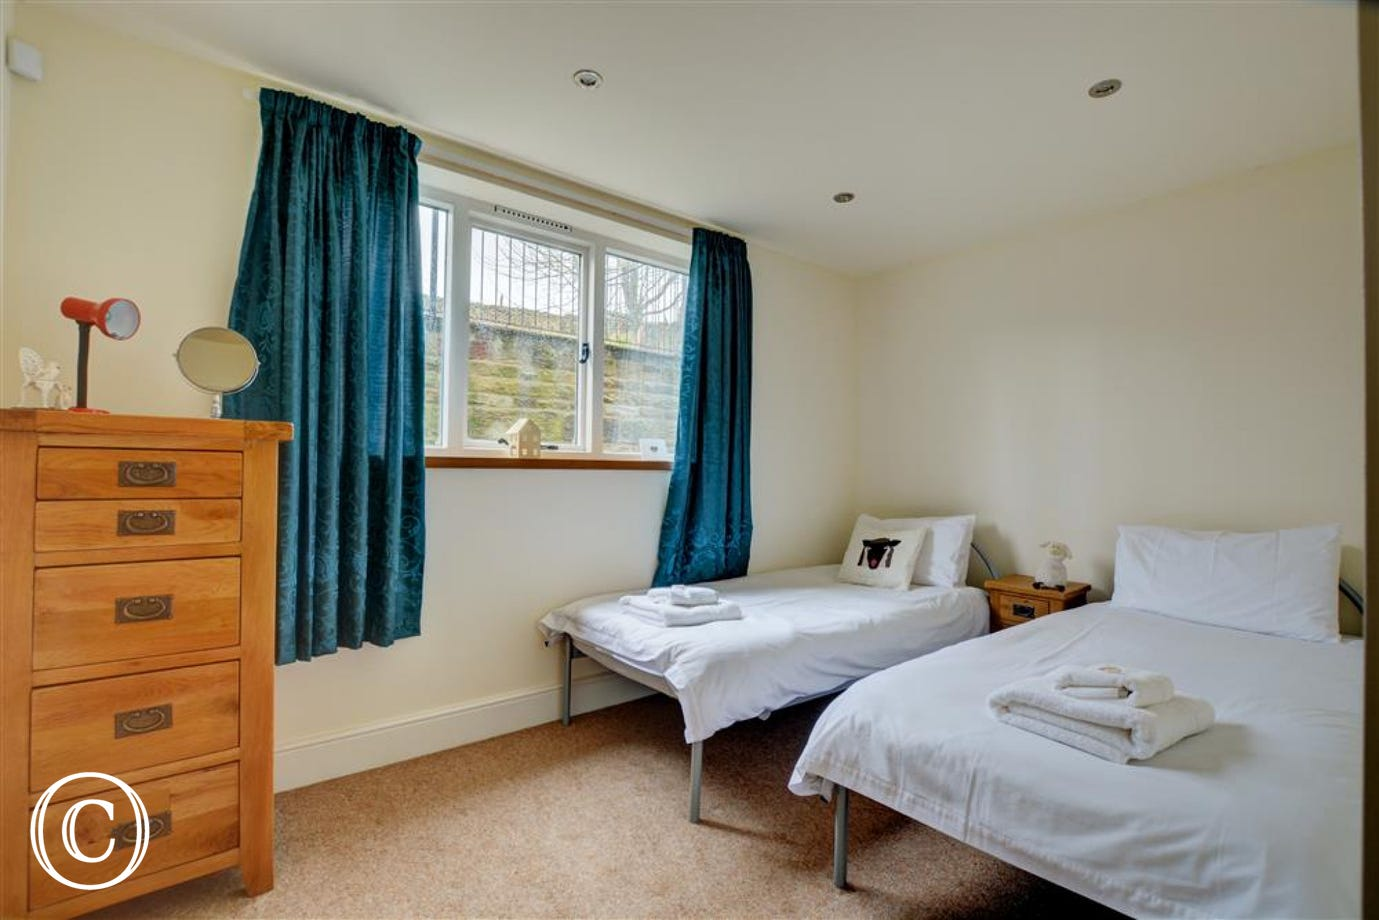 Twin bedroom 4, with garden views to the rear of the property.